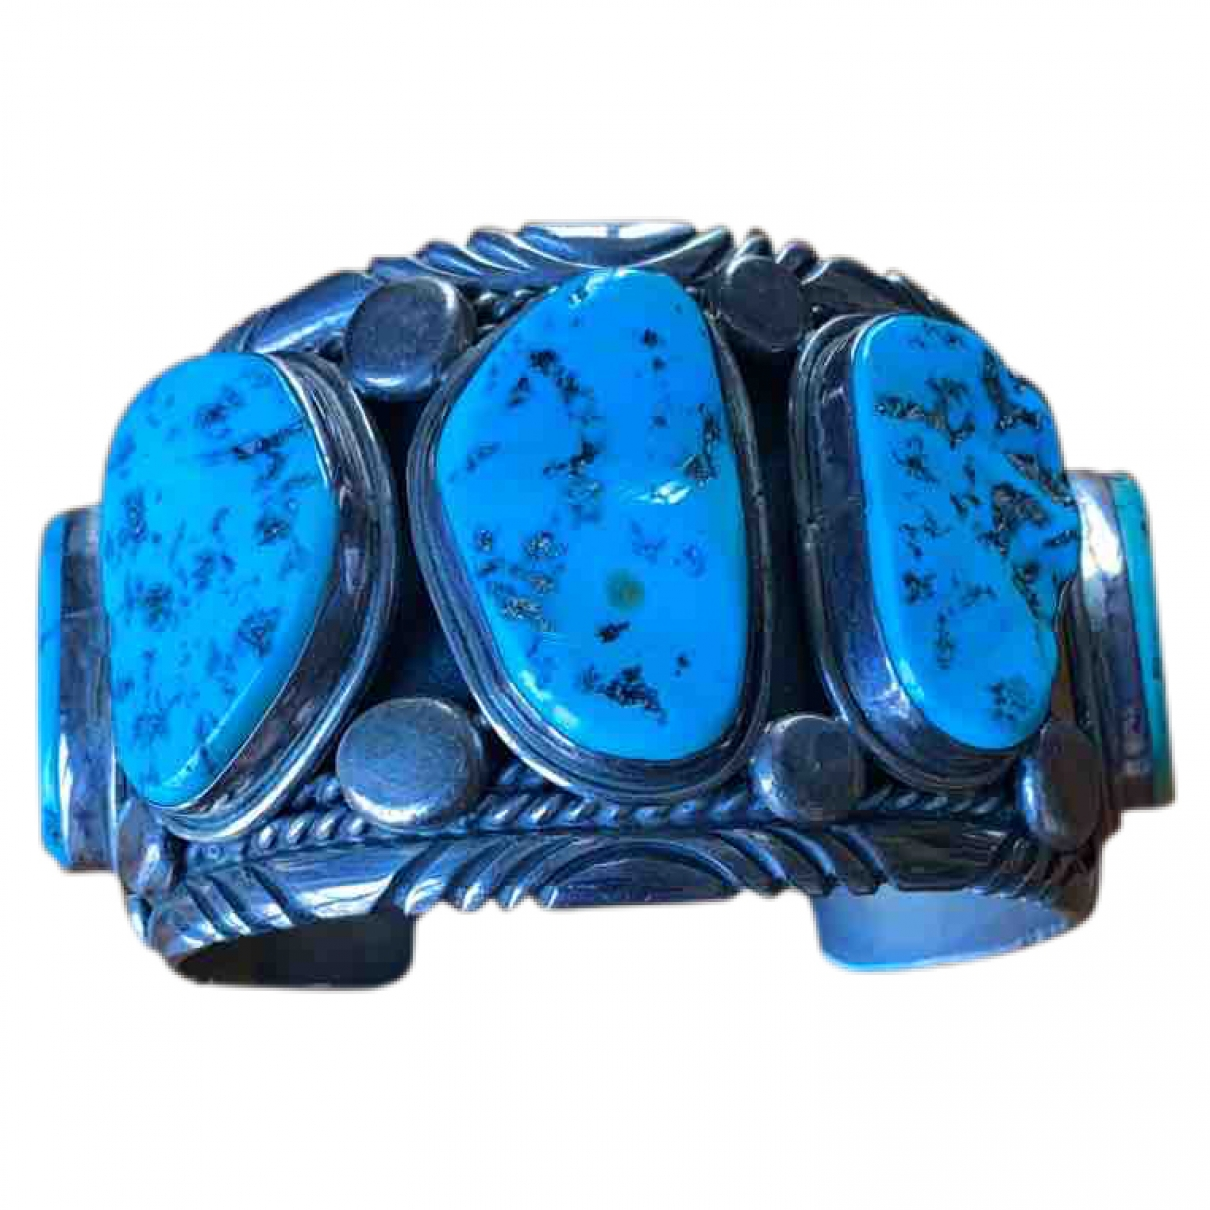 Non Signe / Unsigned Turquoises Armband in  Blau Silber